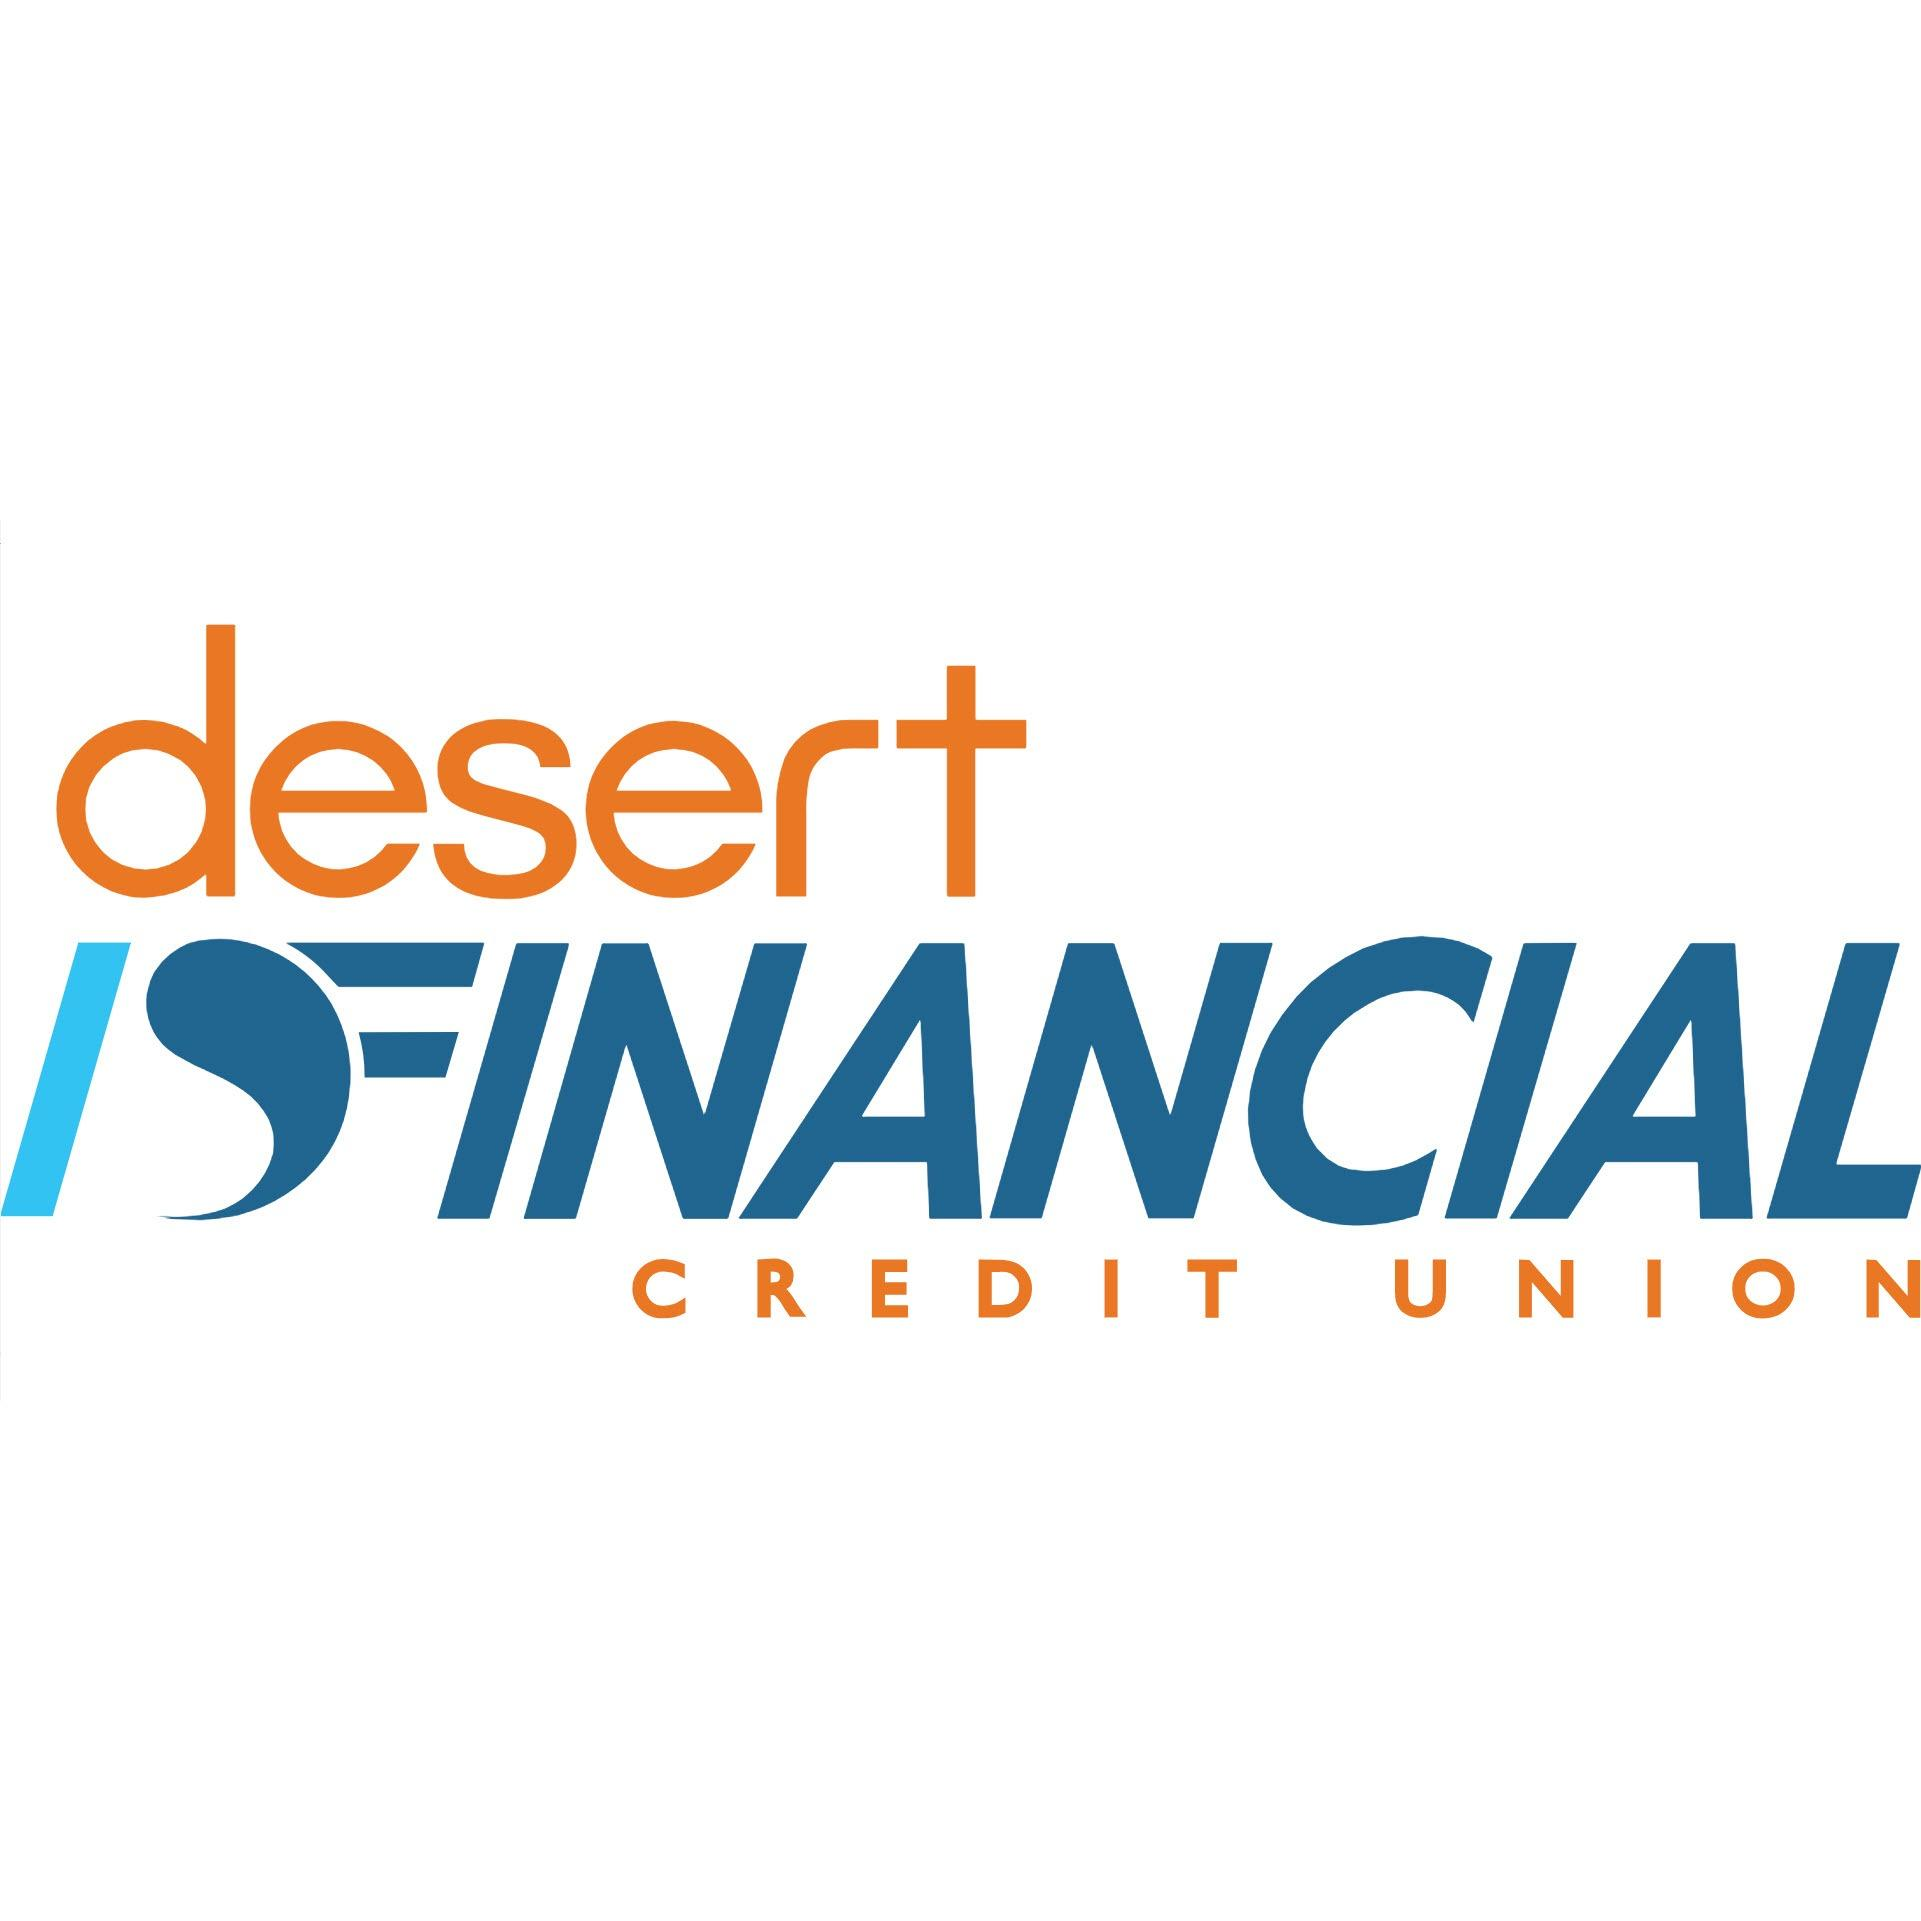 Desert Financial Credit Union image 1